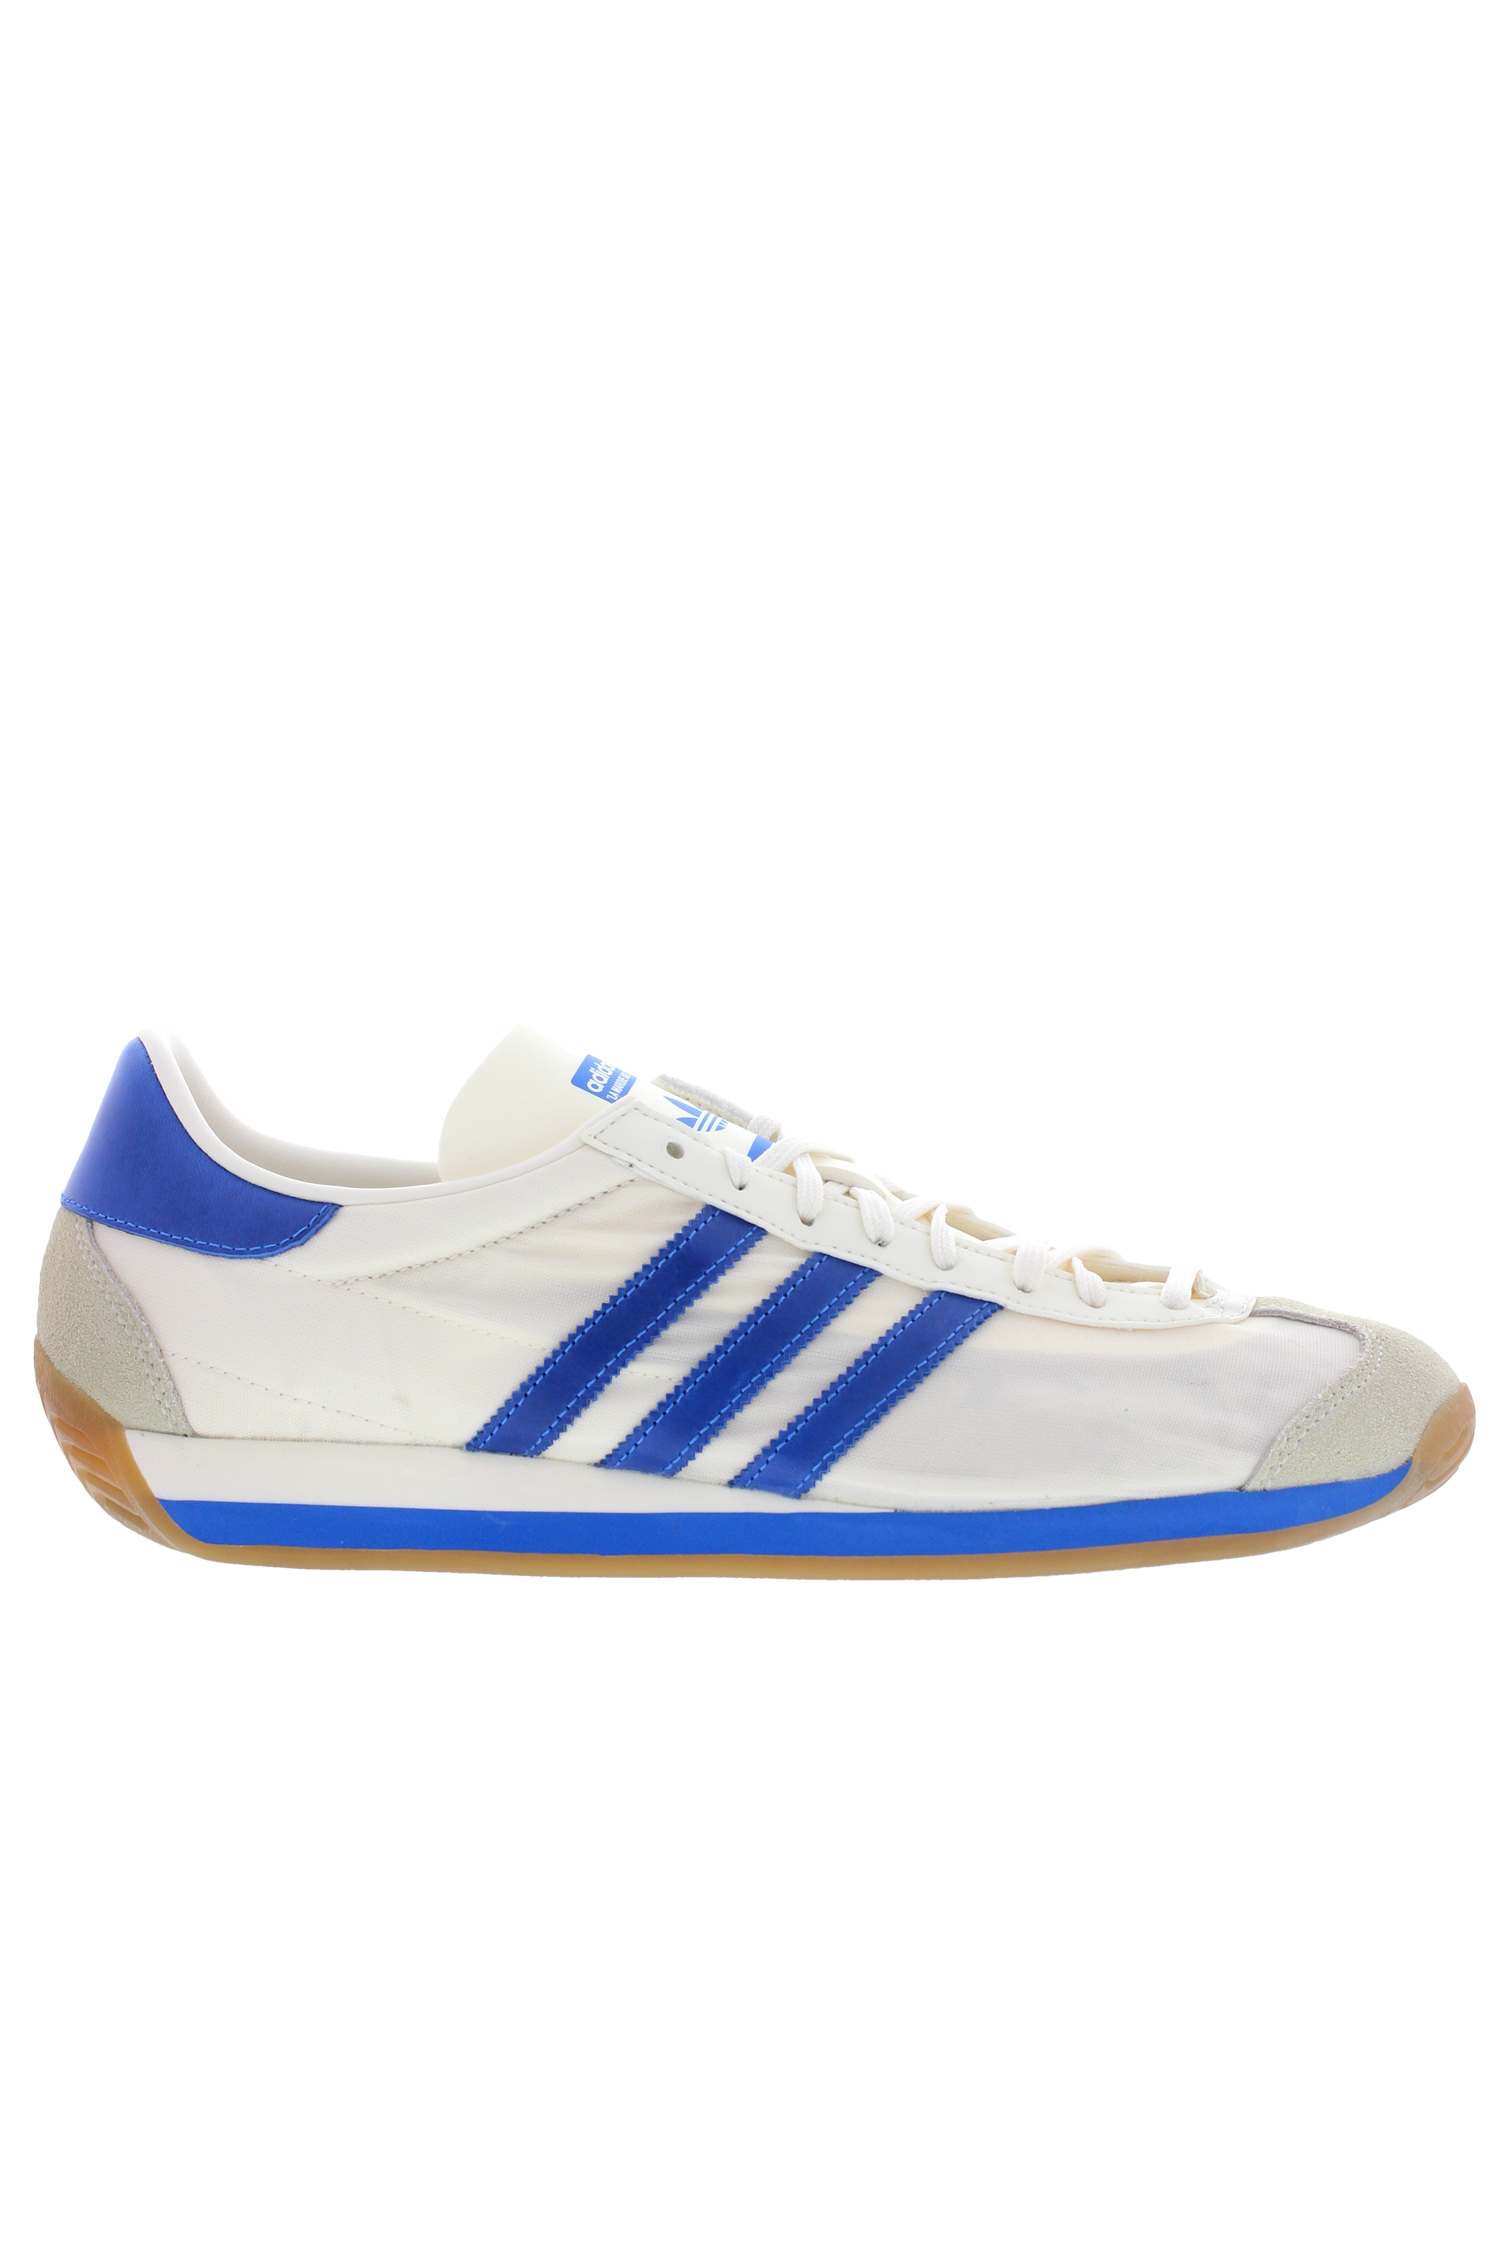 Country Traduction Dhf0if3l Adidas Og Originals Mode Baskets xSWf41q8wn